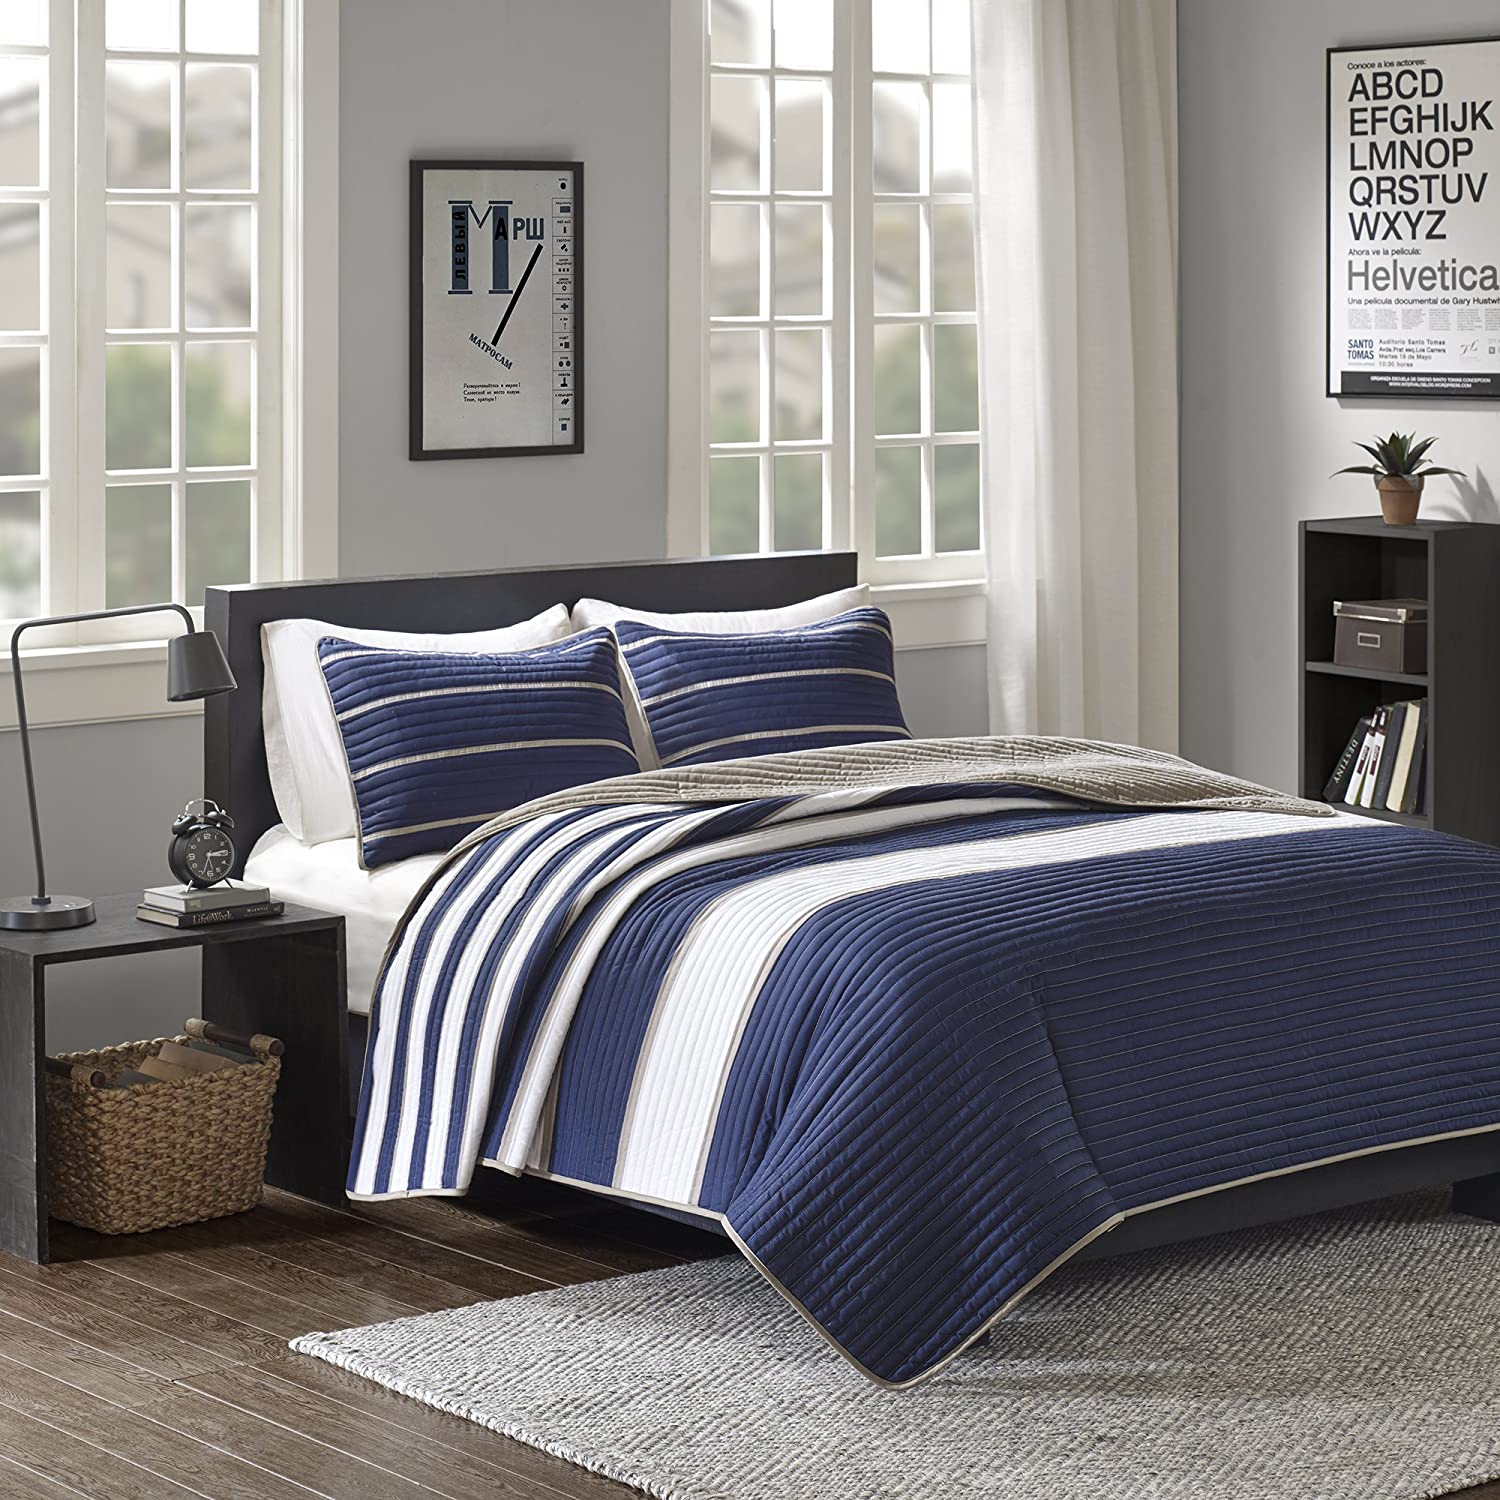 Comfort Spaces - Verone Mini Quilt Coverlet Set - 2 Piece - Navy, White, Khaki - Stripes Pattern